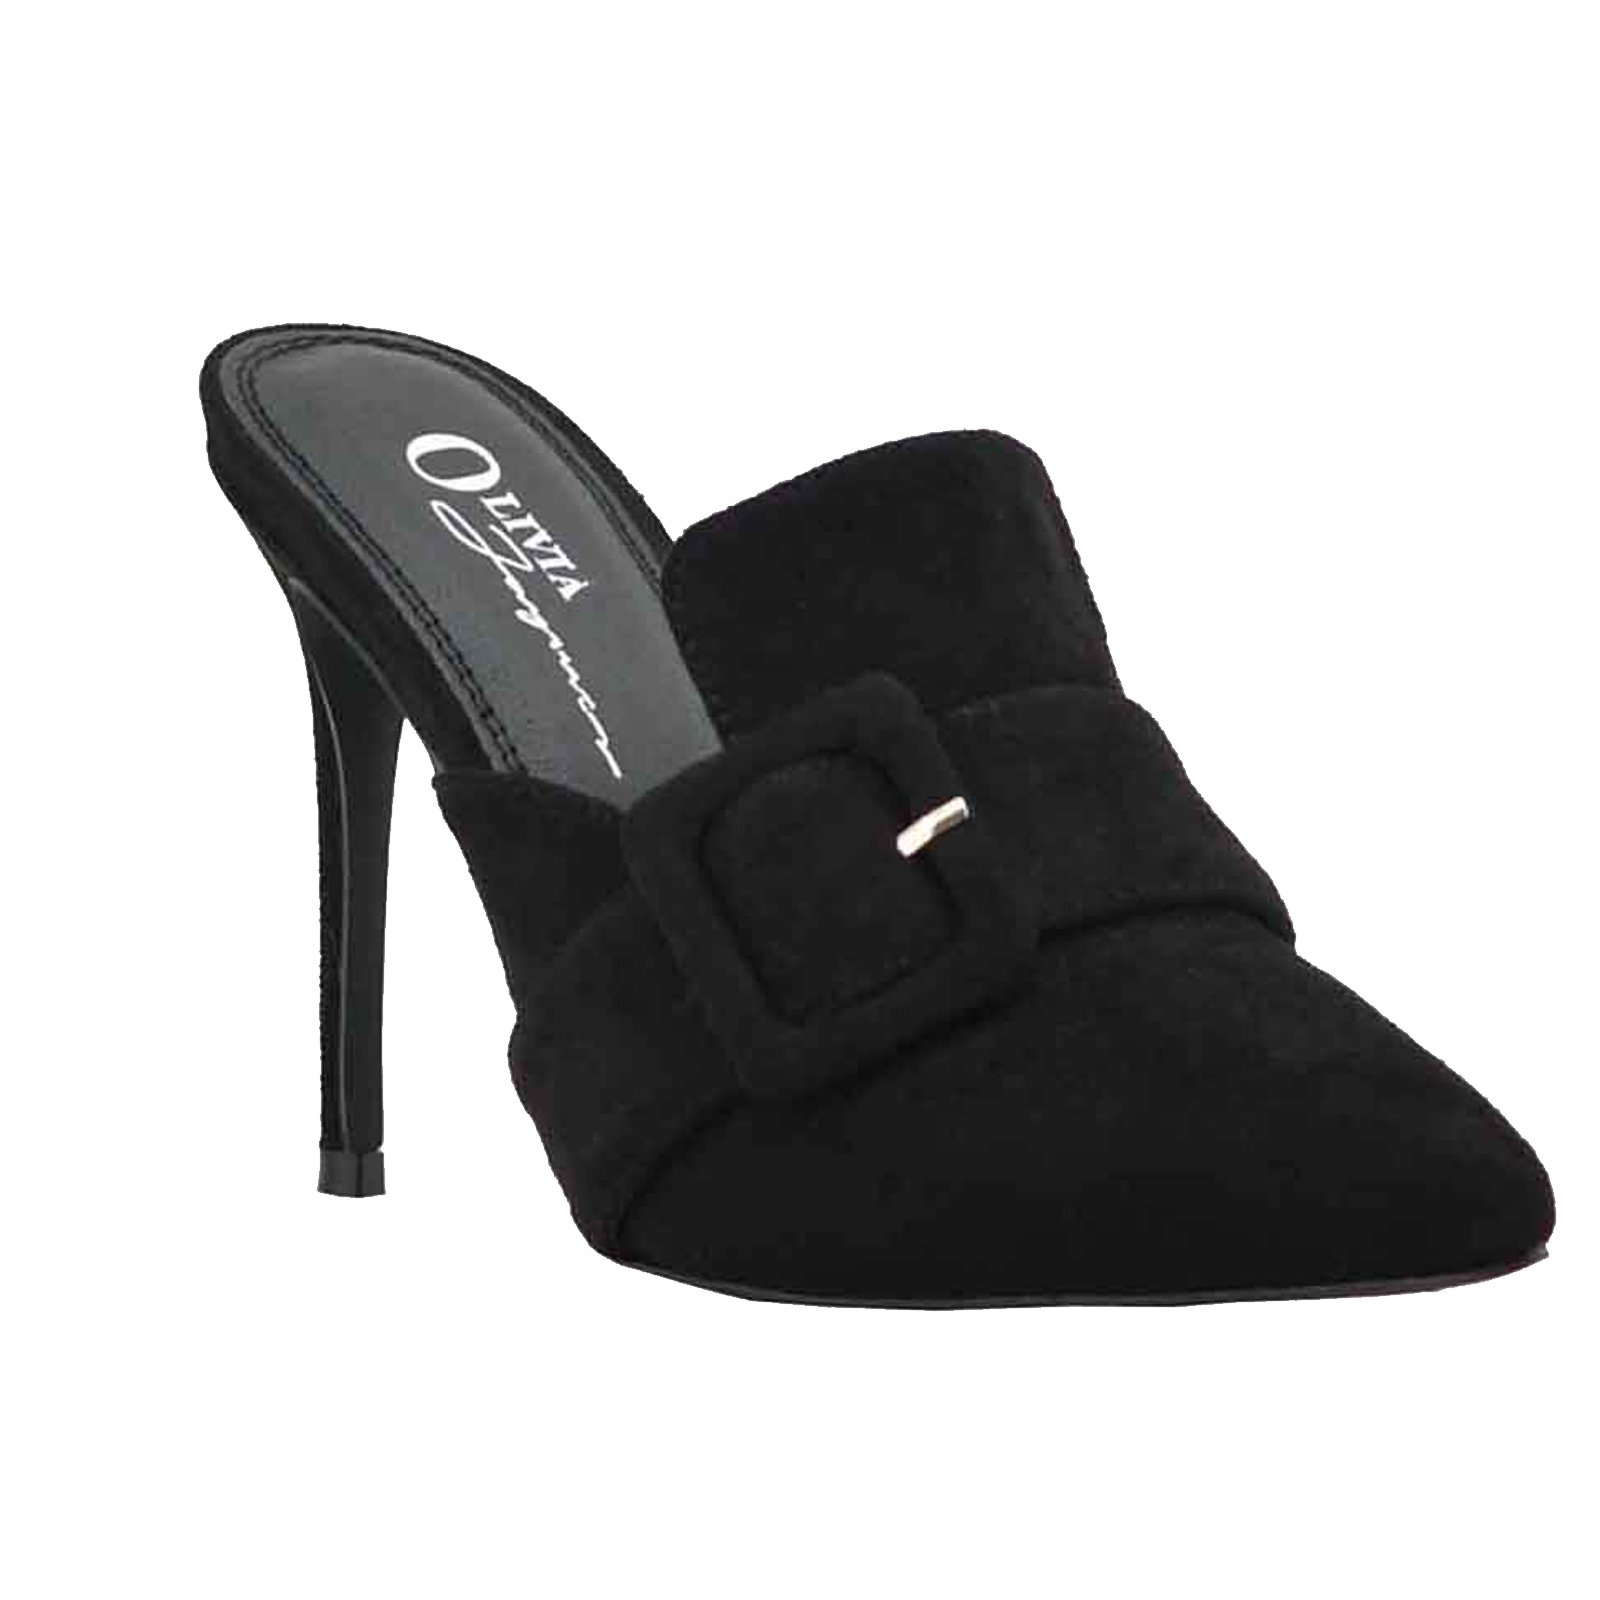 Women Casual Sandals Close Toe One Band Buckle Mule Slide Heeled Shoes (7.5, Black)